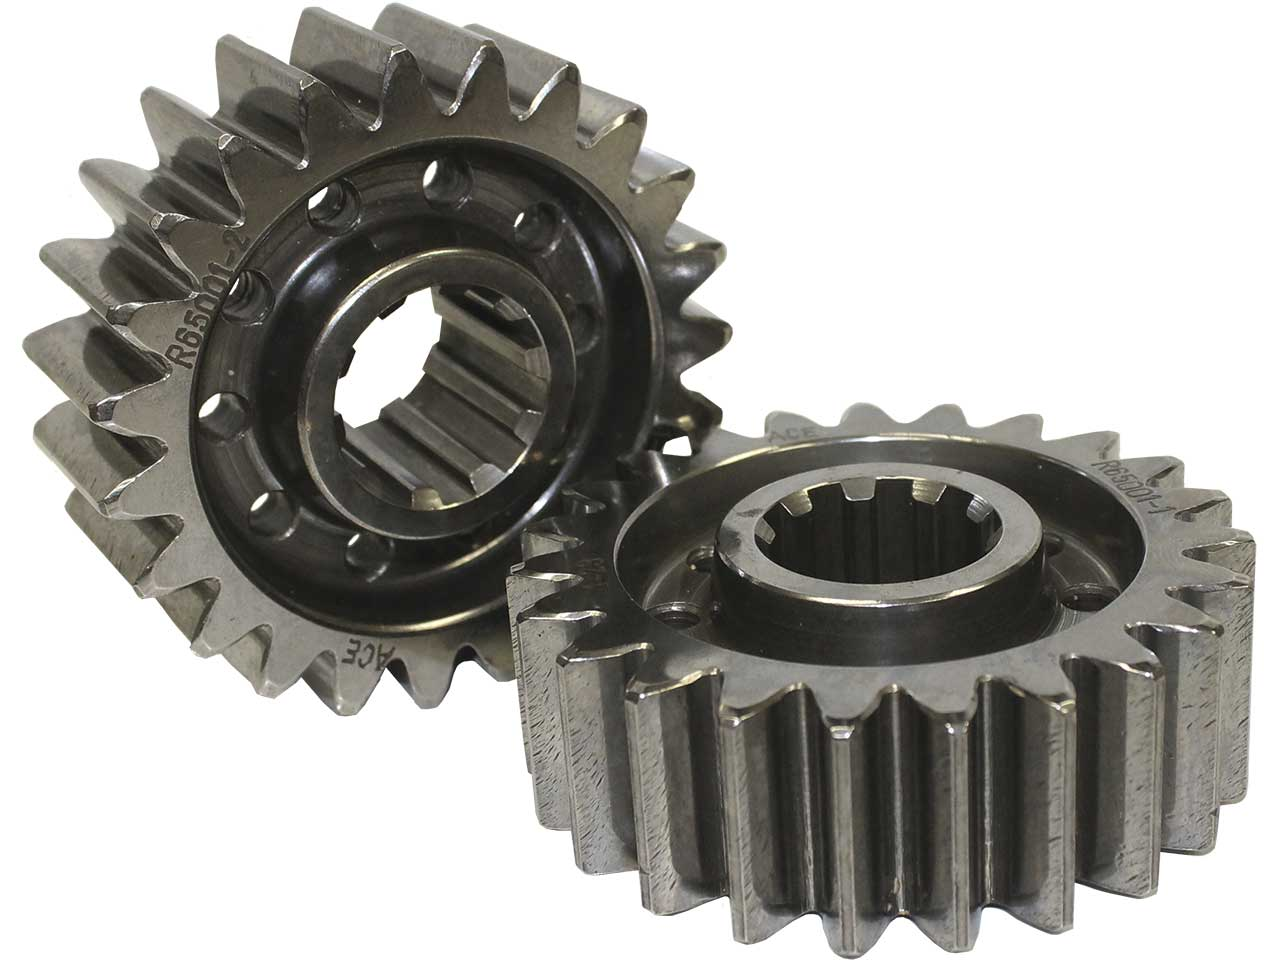 Picture of PEM Premium Lightweight Quick Change Gear Set #32A - 5.90(4.11)/6.97(4.86)